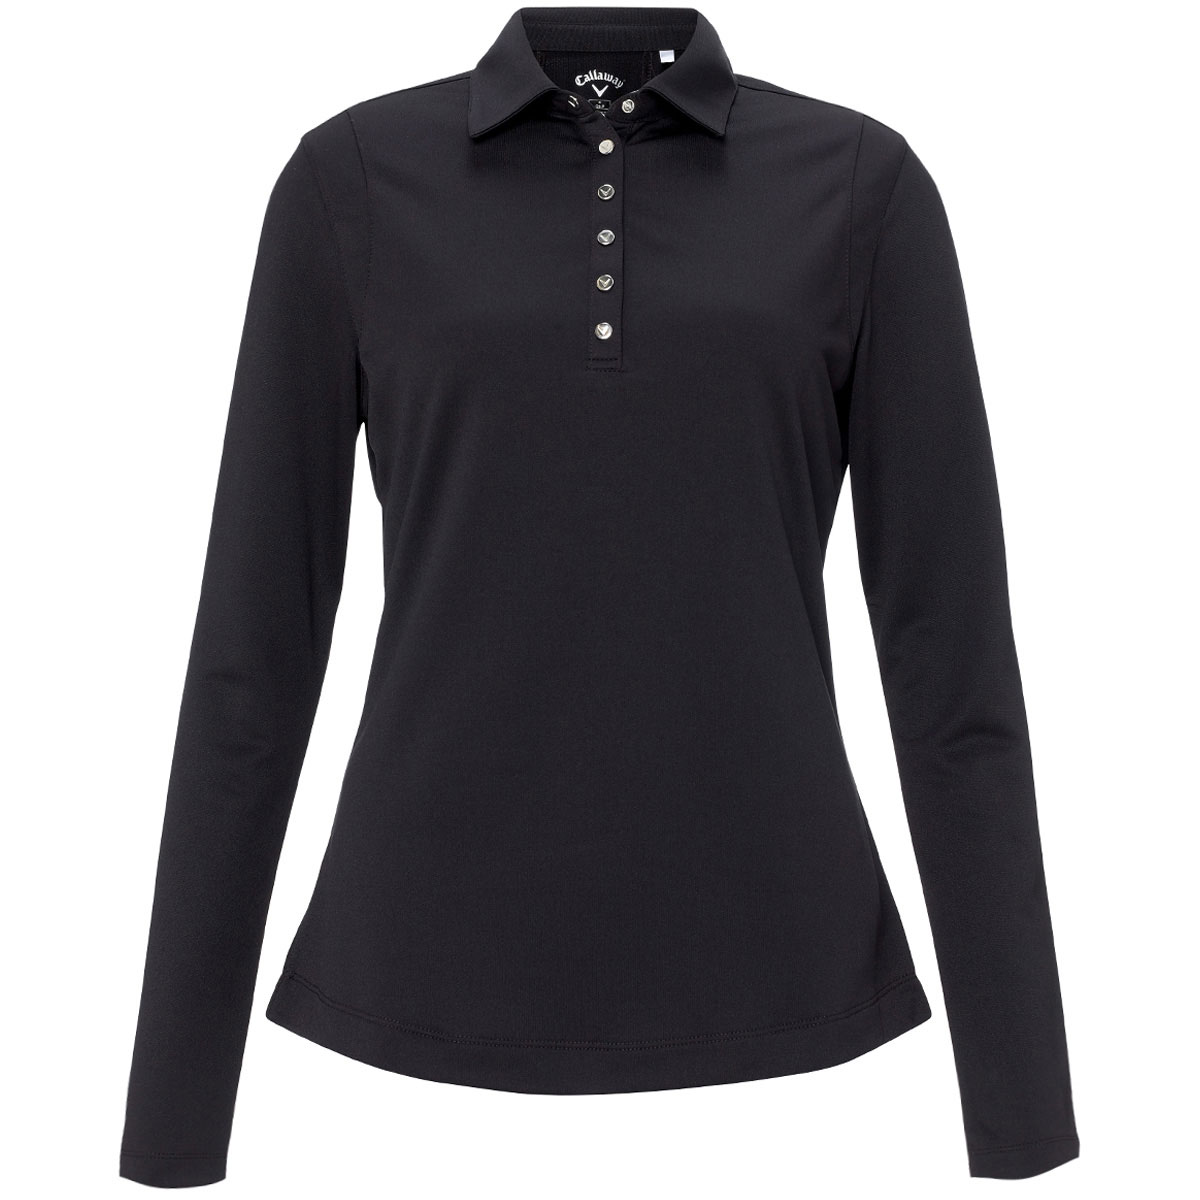 Callaway Golf Women 39 S Sarah Fleece Lined Long Sleeve Golf